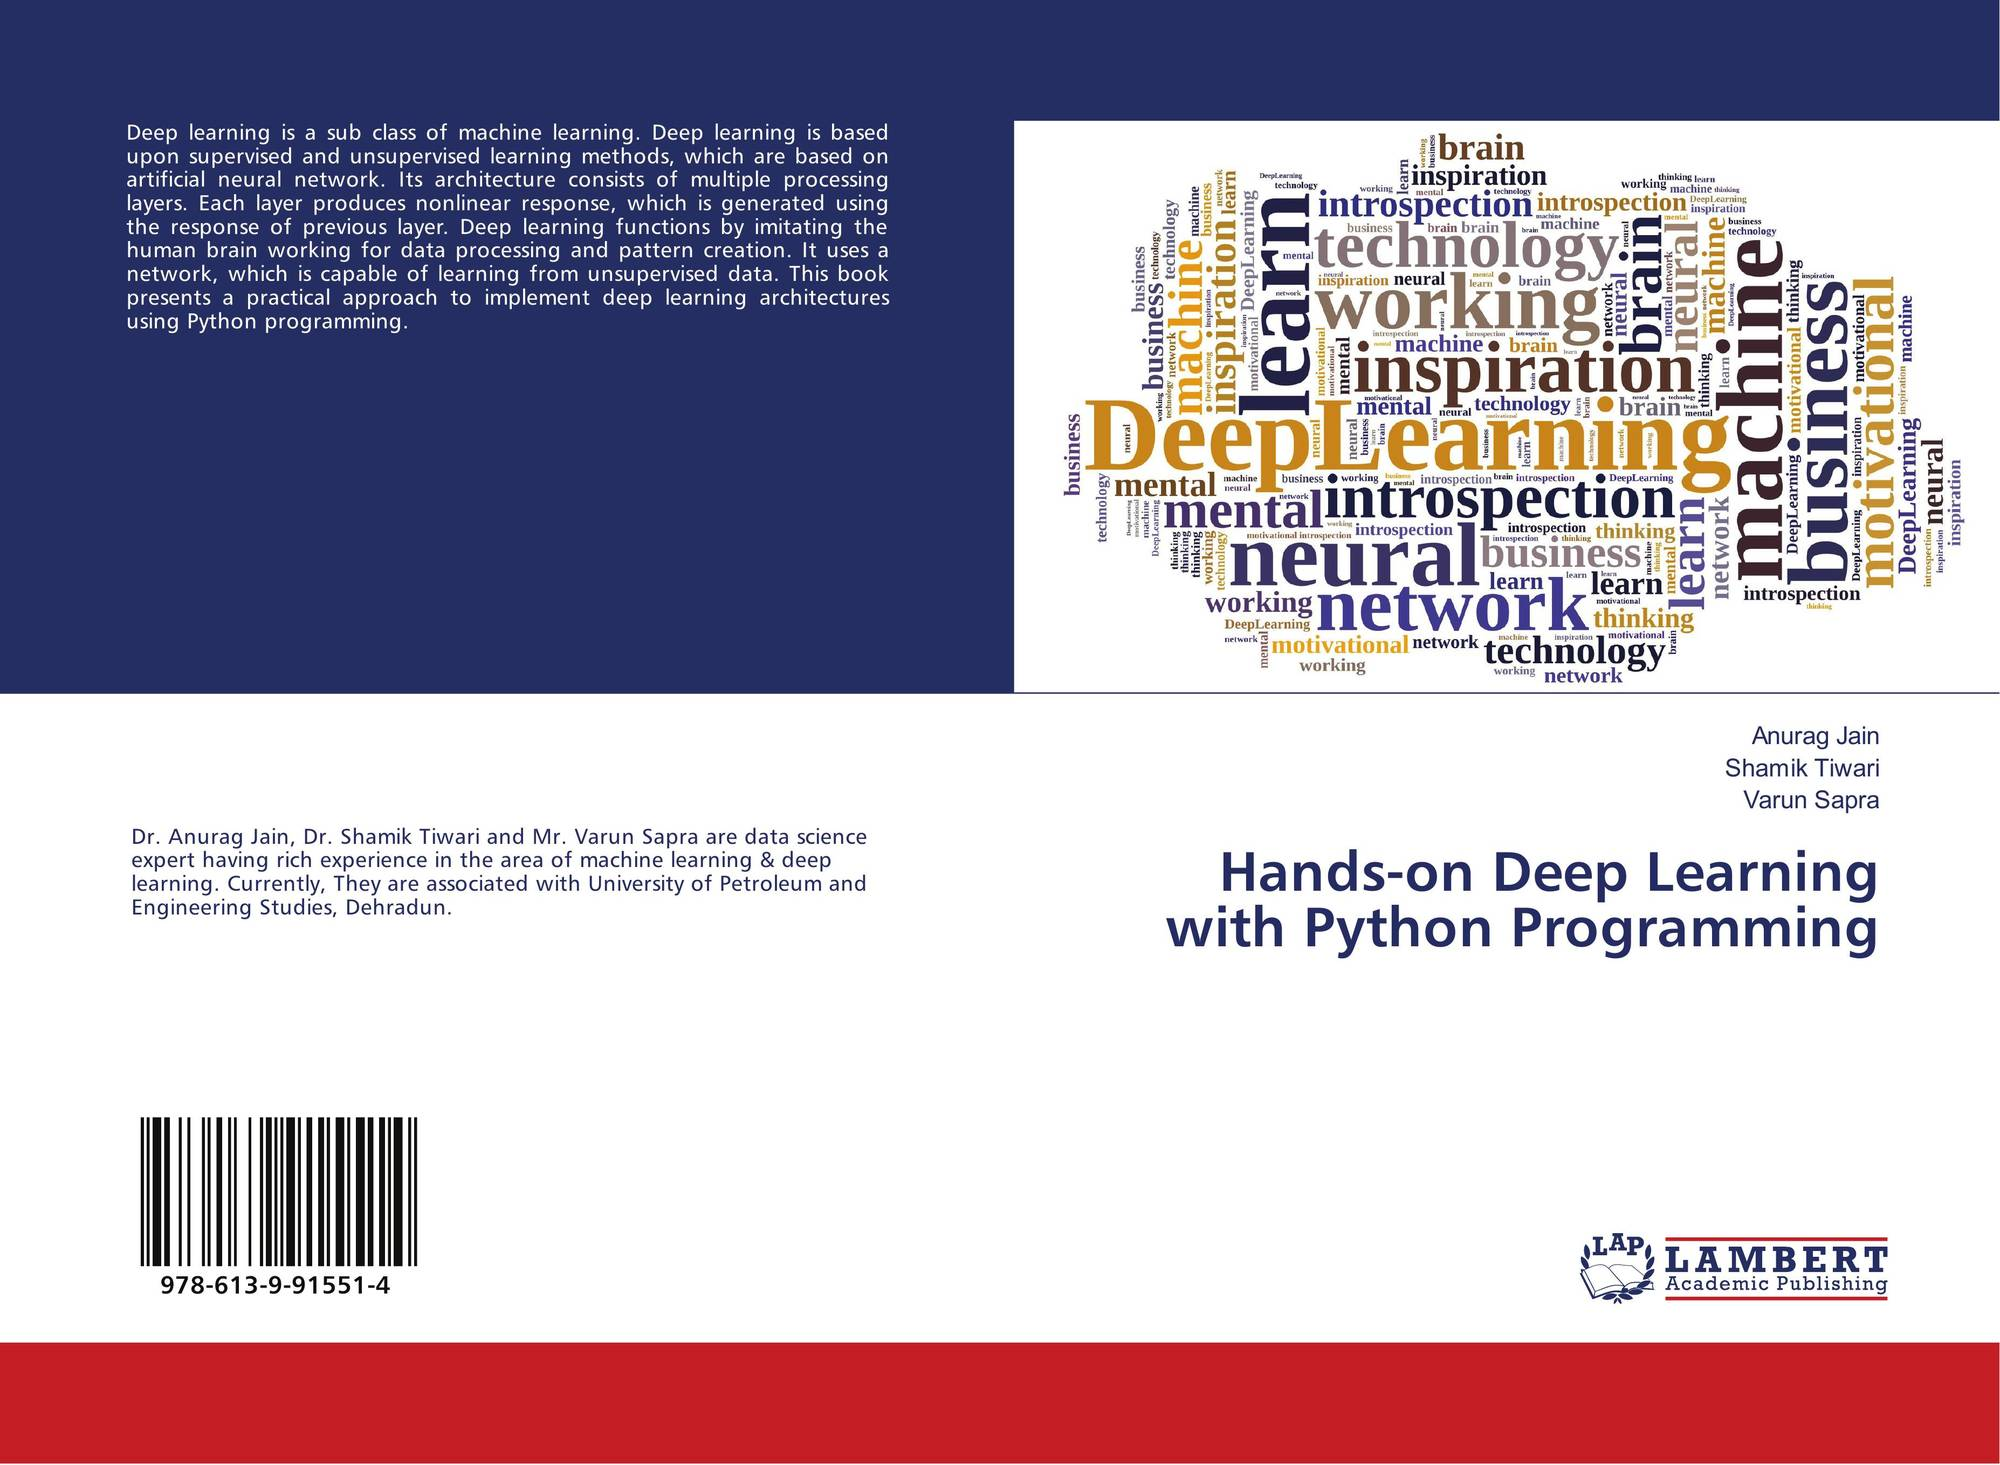 Hands-on Deep Learning with Python Programming, 978-613-9-91551-4